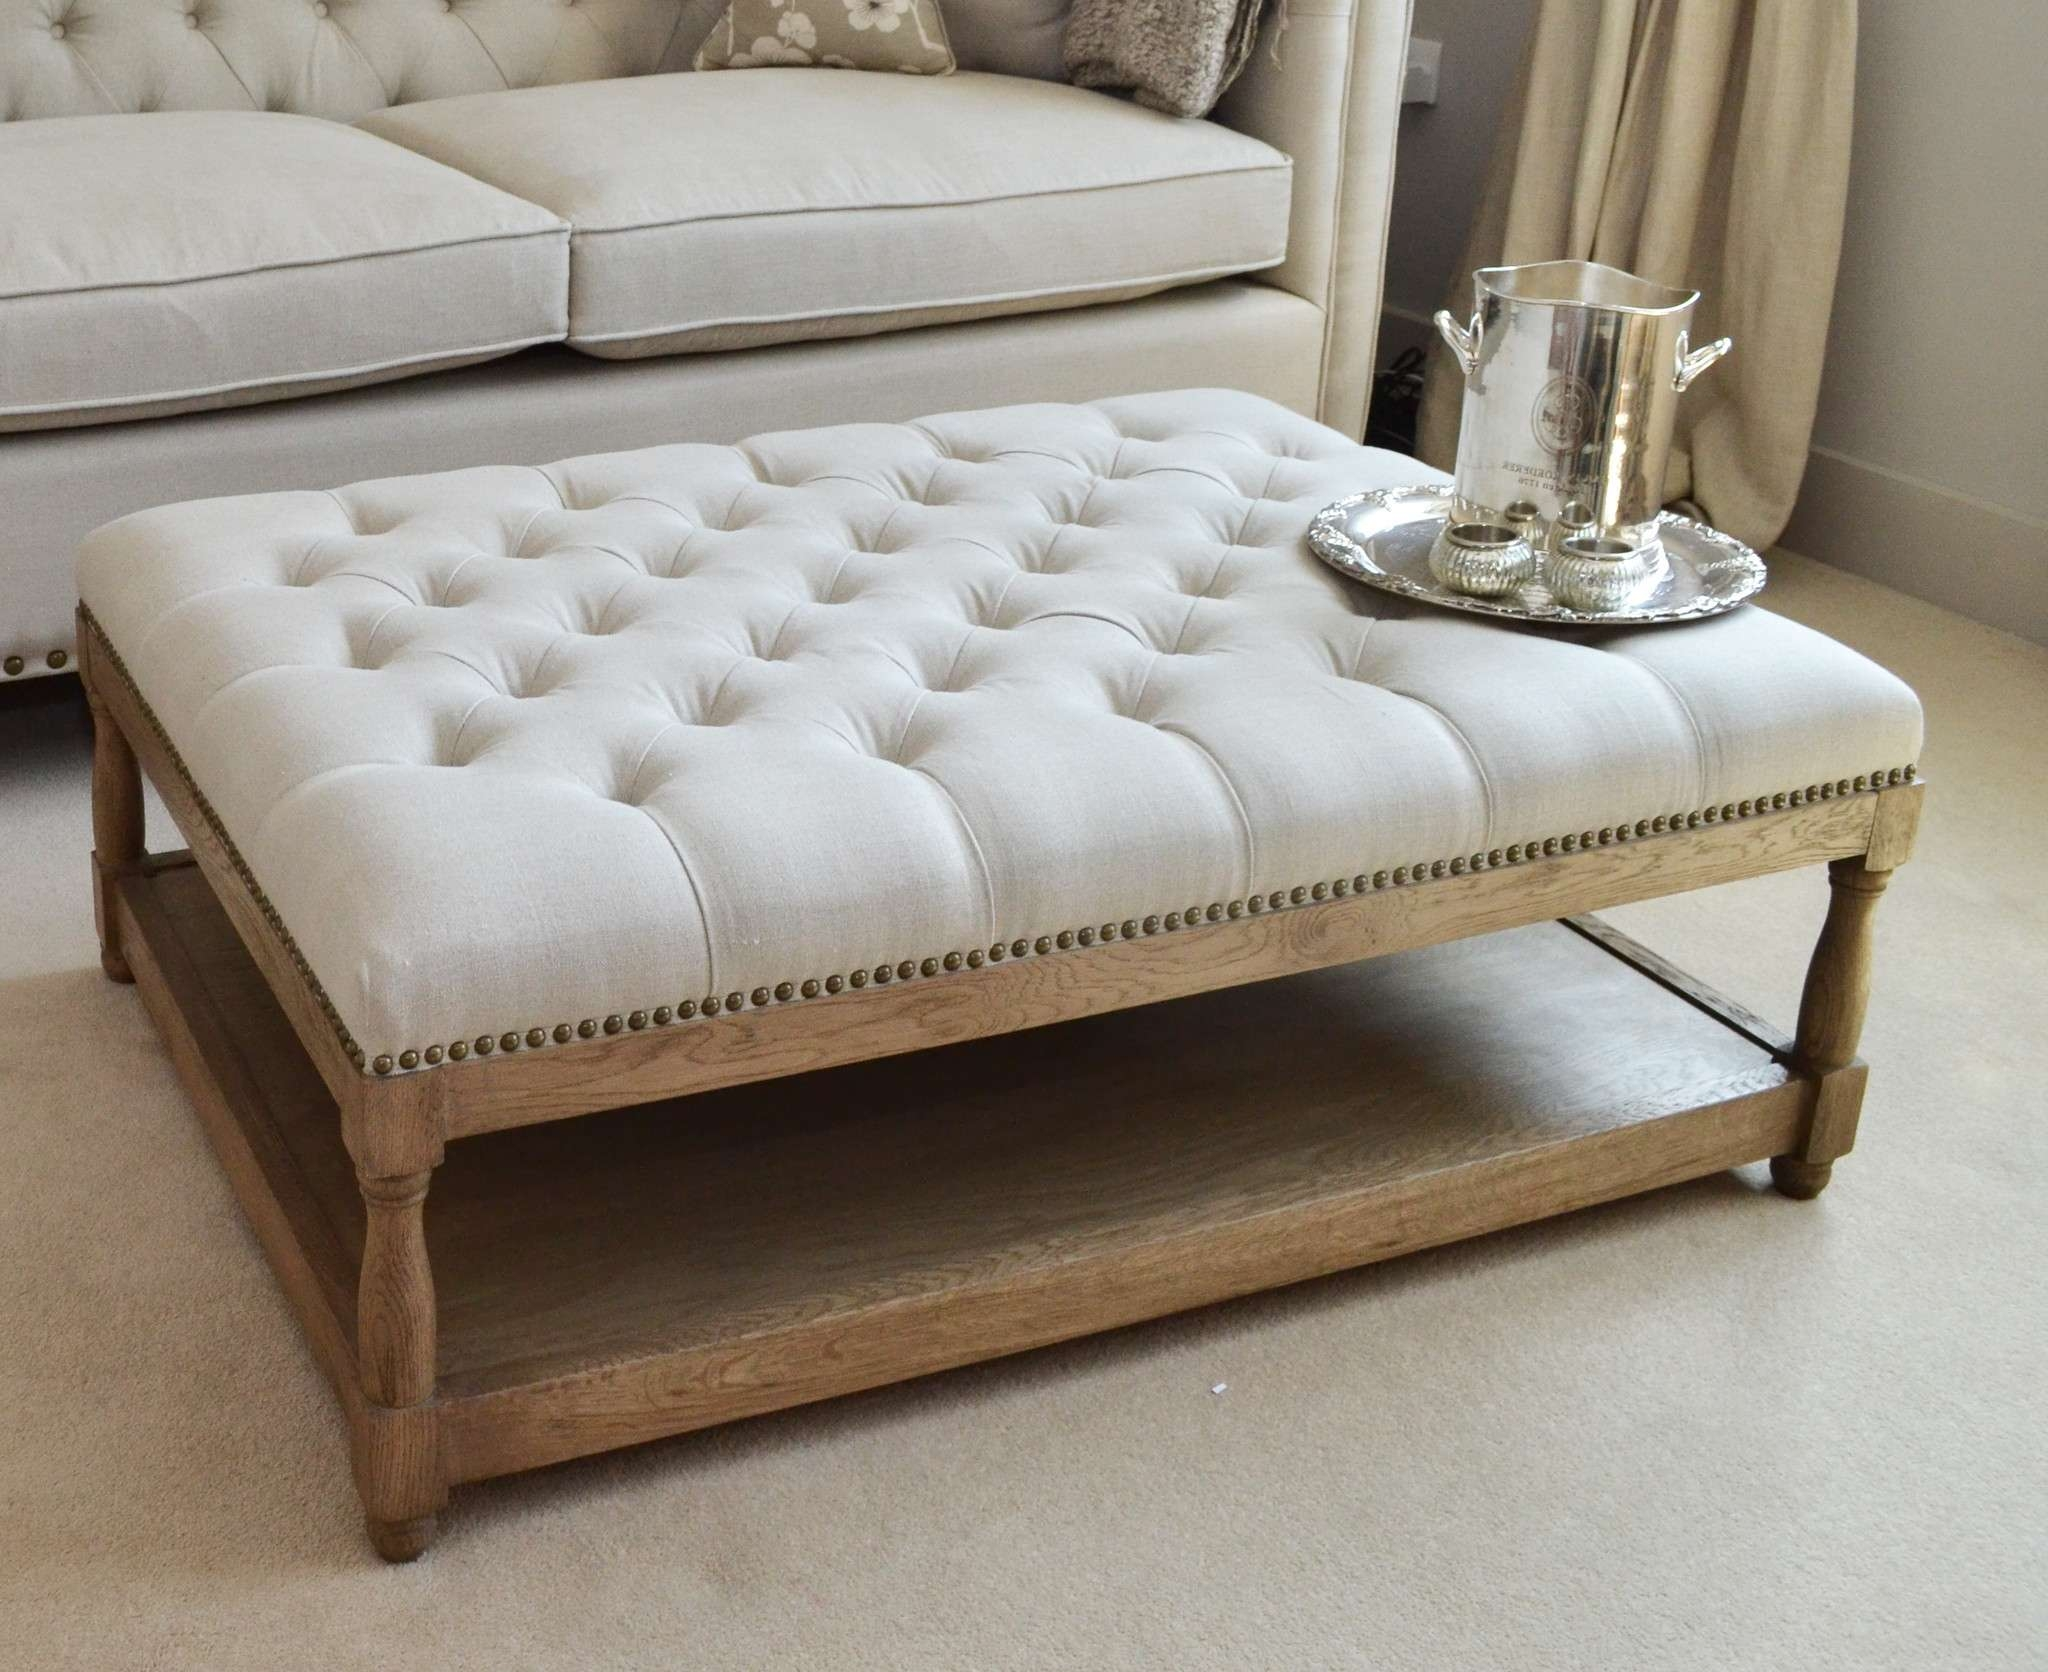 Newest Huge Coffee Tables Throughout Furniture : Large Padded Coffee Table Extra Long Storage Ottoman (View 7 of 20)